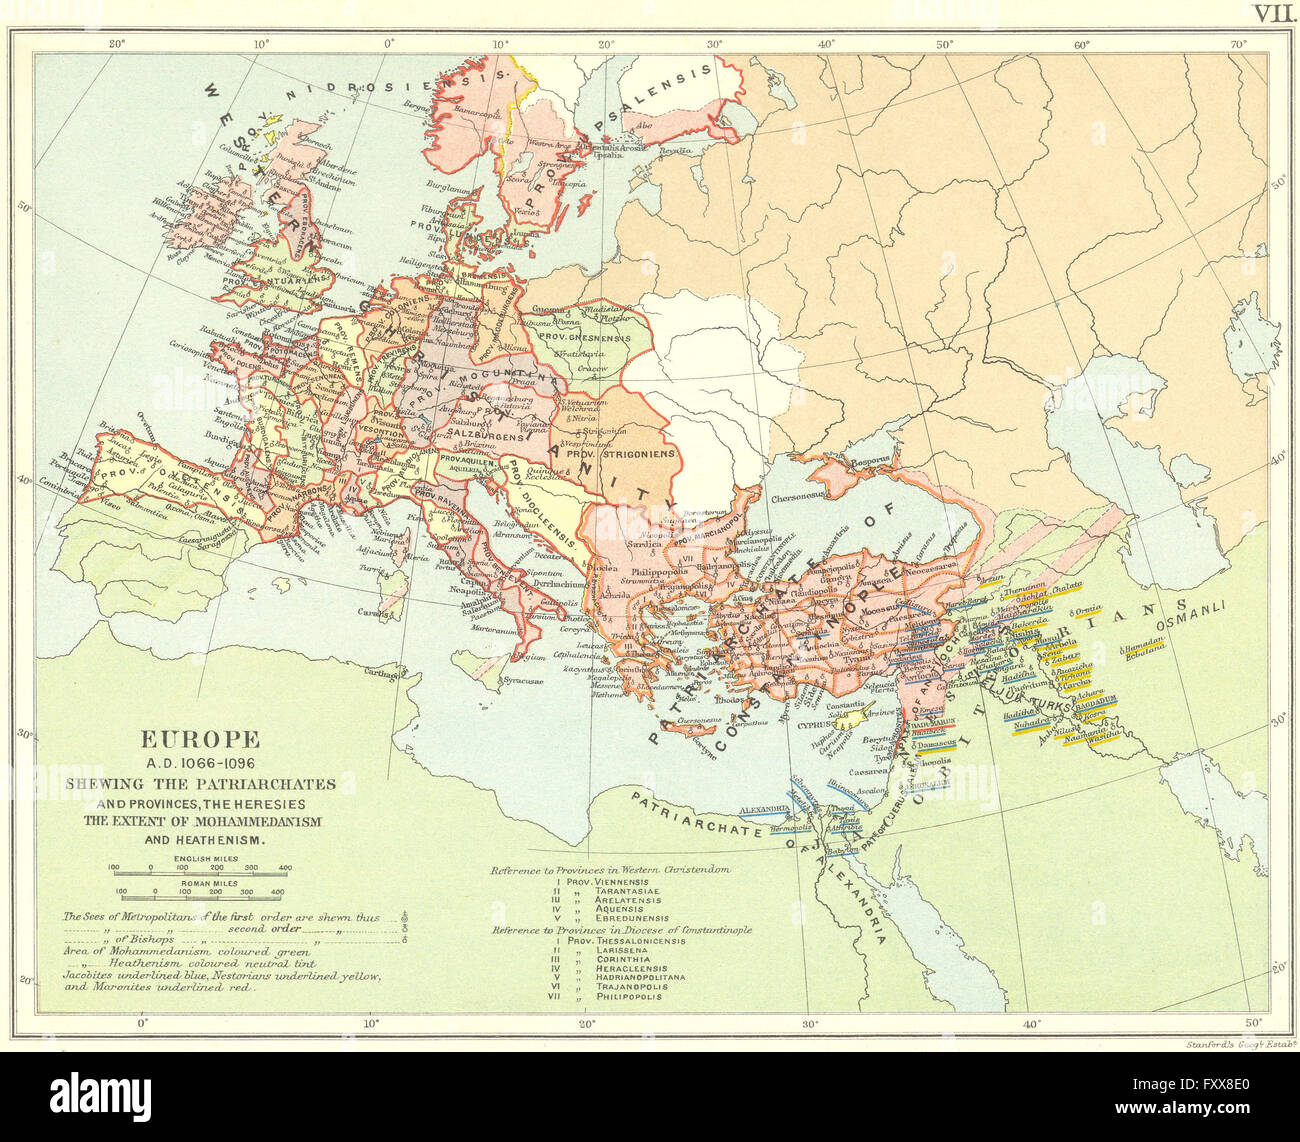 Religious Europe 1066 1096ad Patriarchates Provinces Heresies Islam